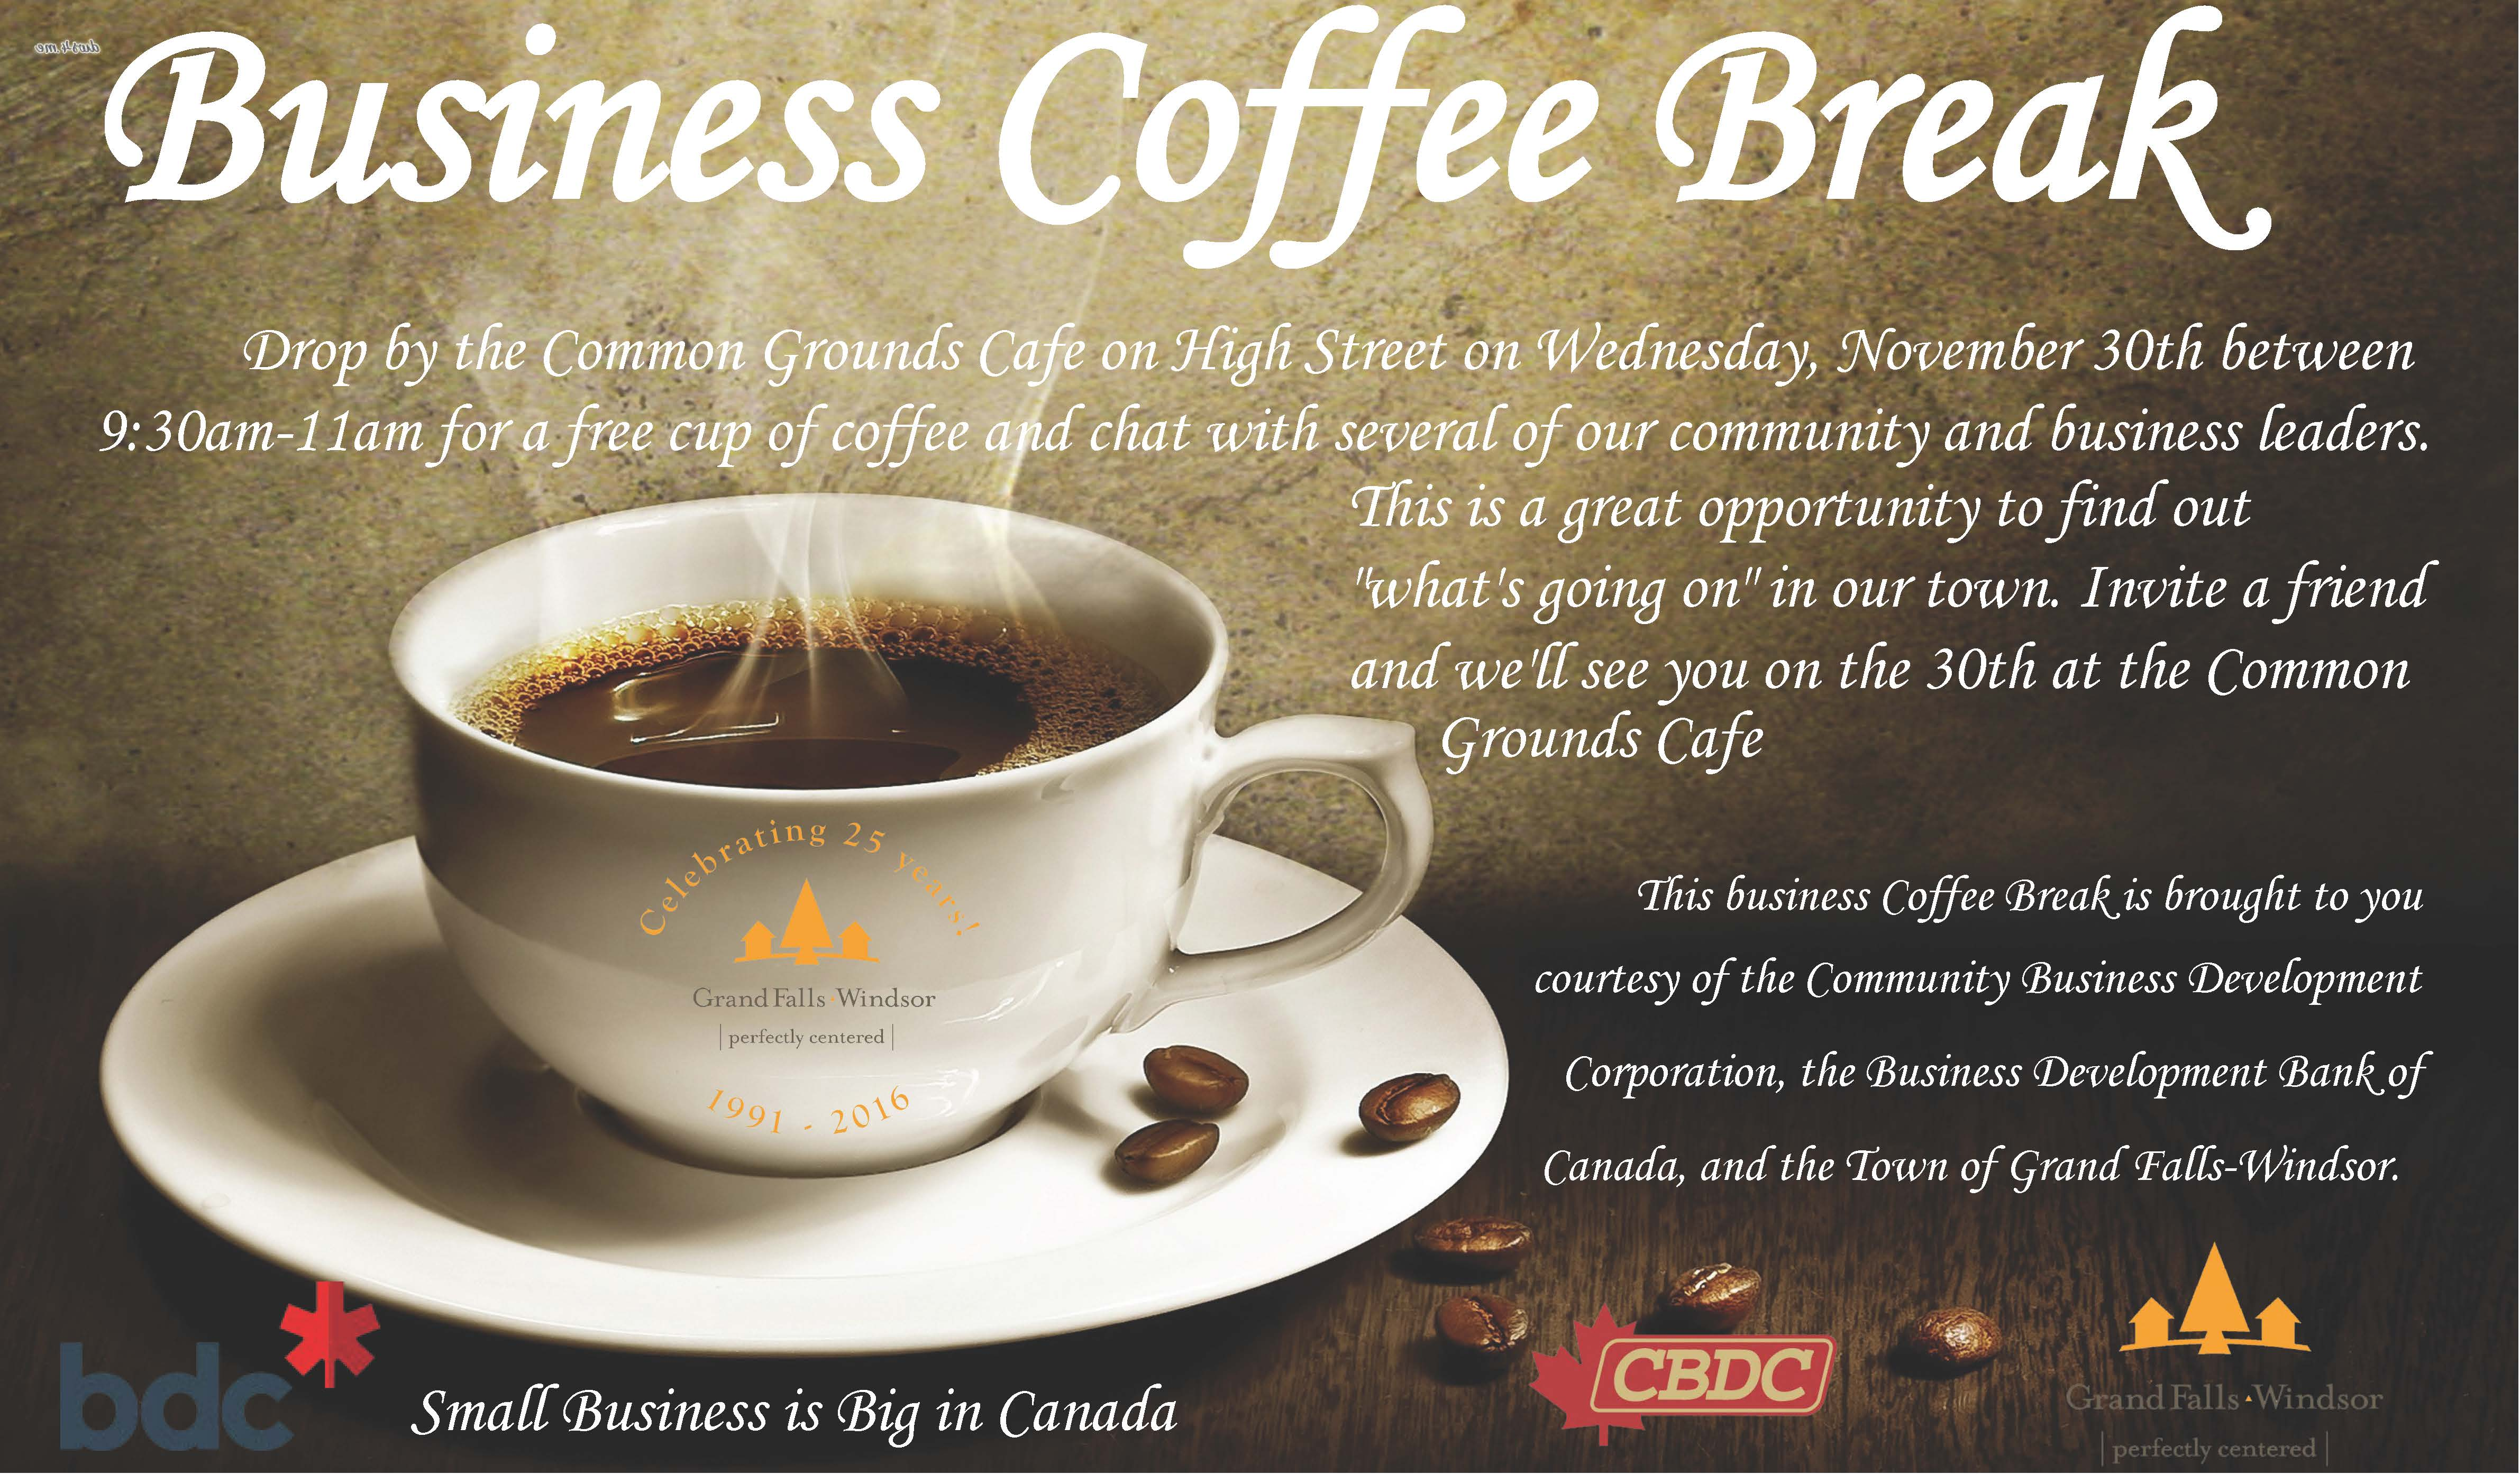 Business coffee break november 30th grand falls windsor for Coffee business